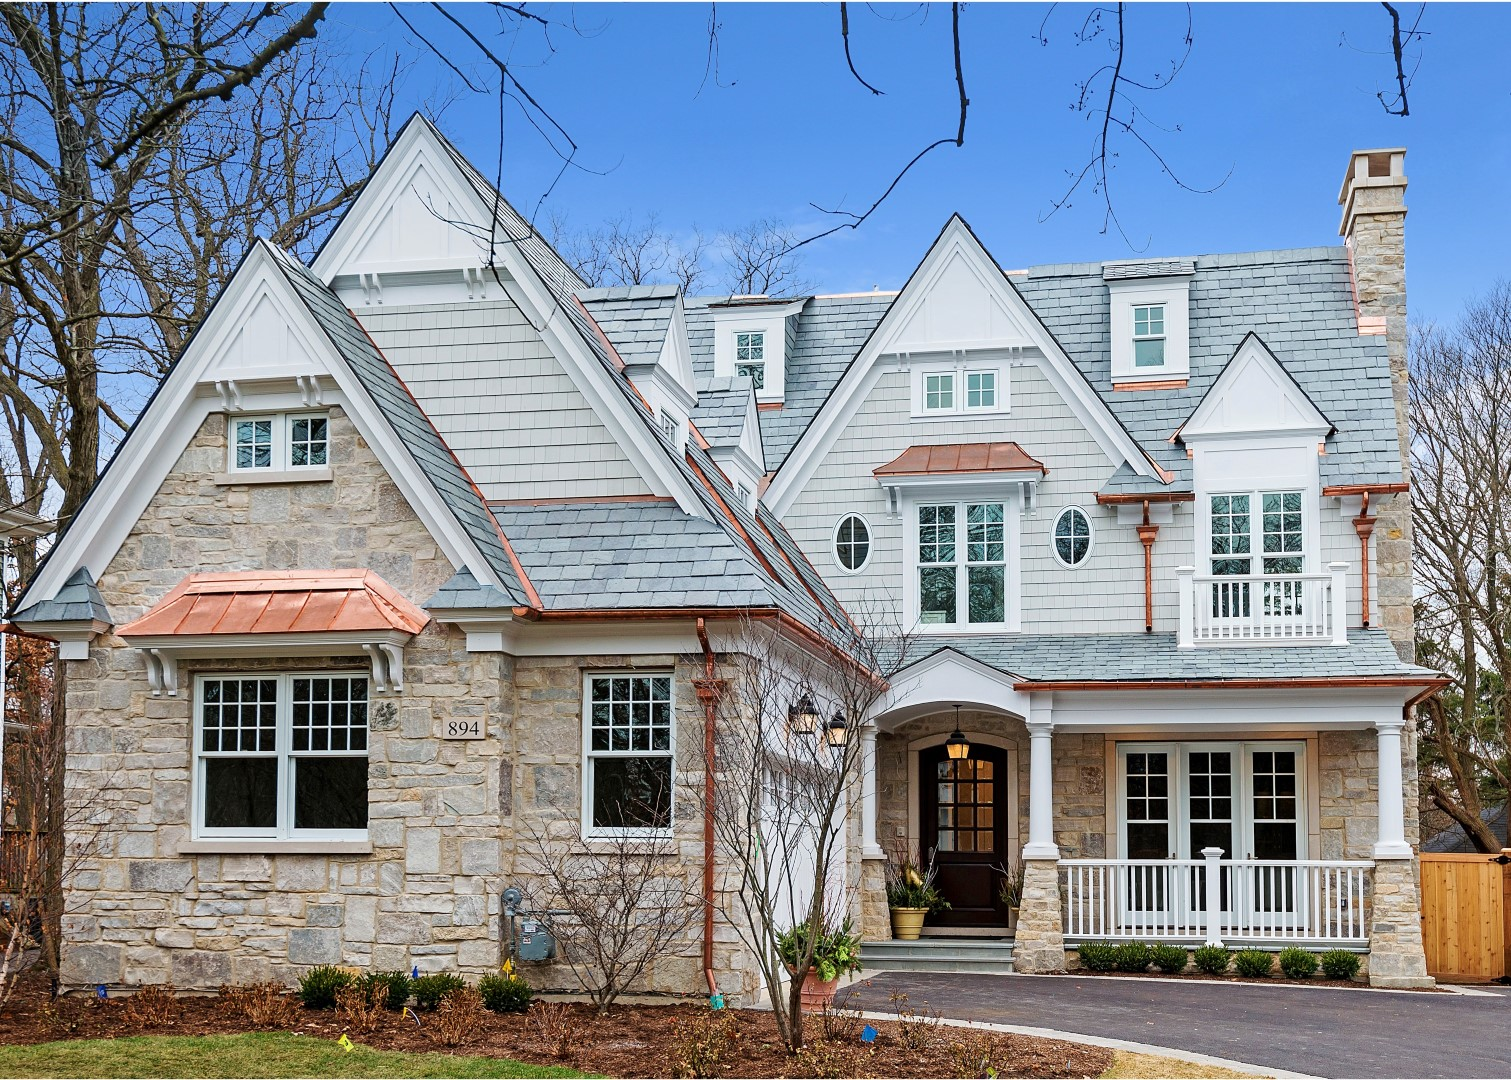 Coastal Nantucket style home with slate roof - front of home